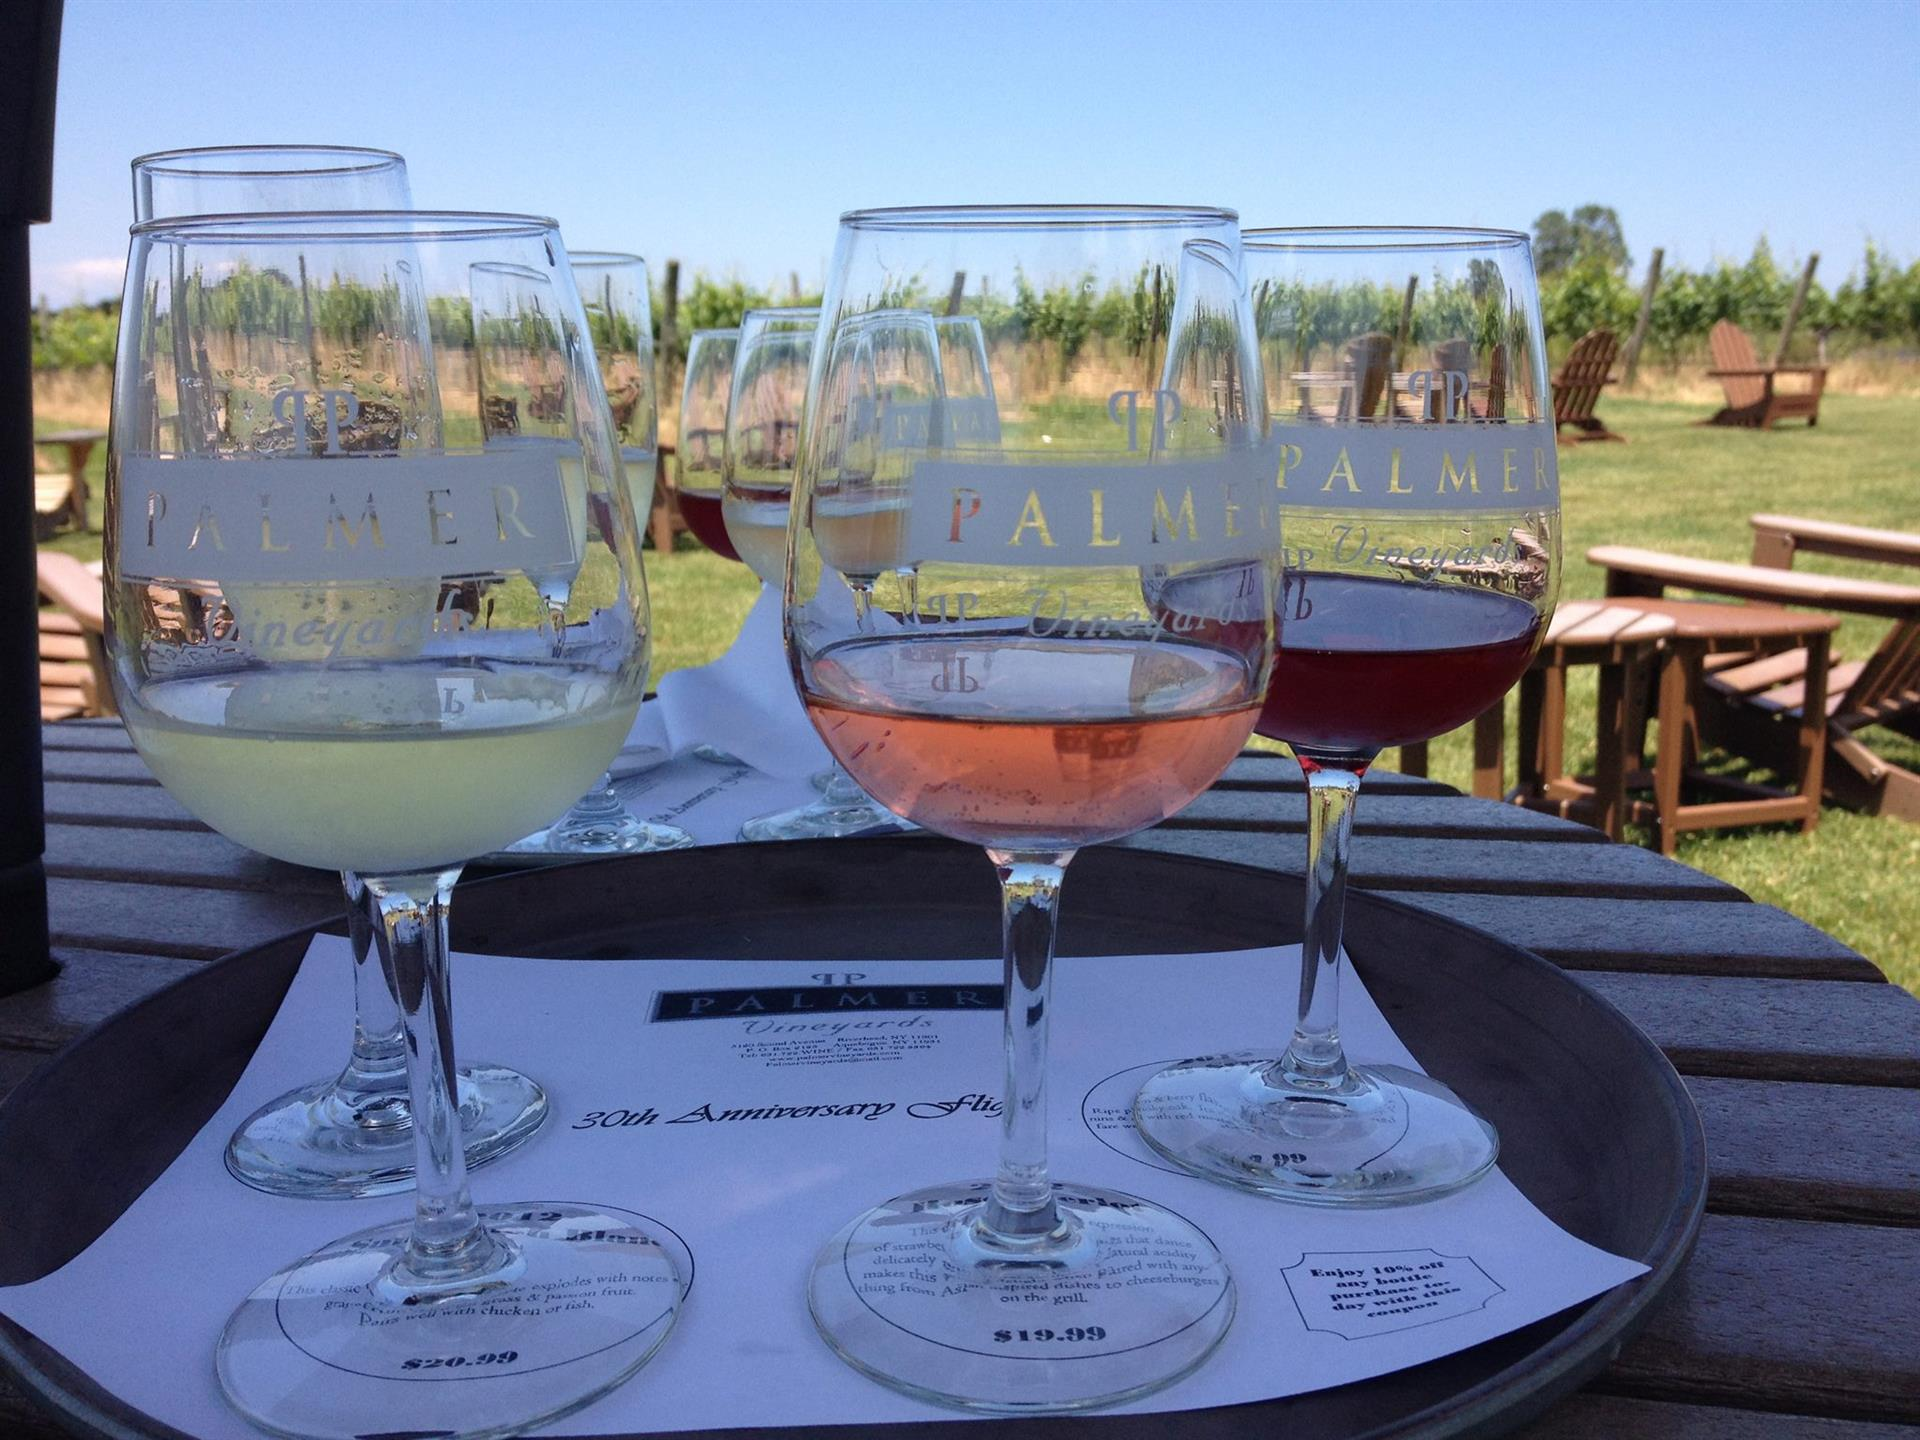 Wine glasses filled with assorted wines